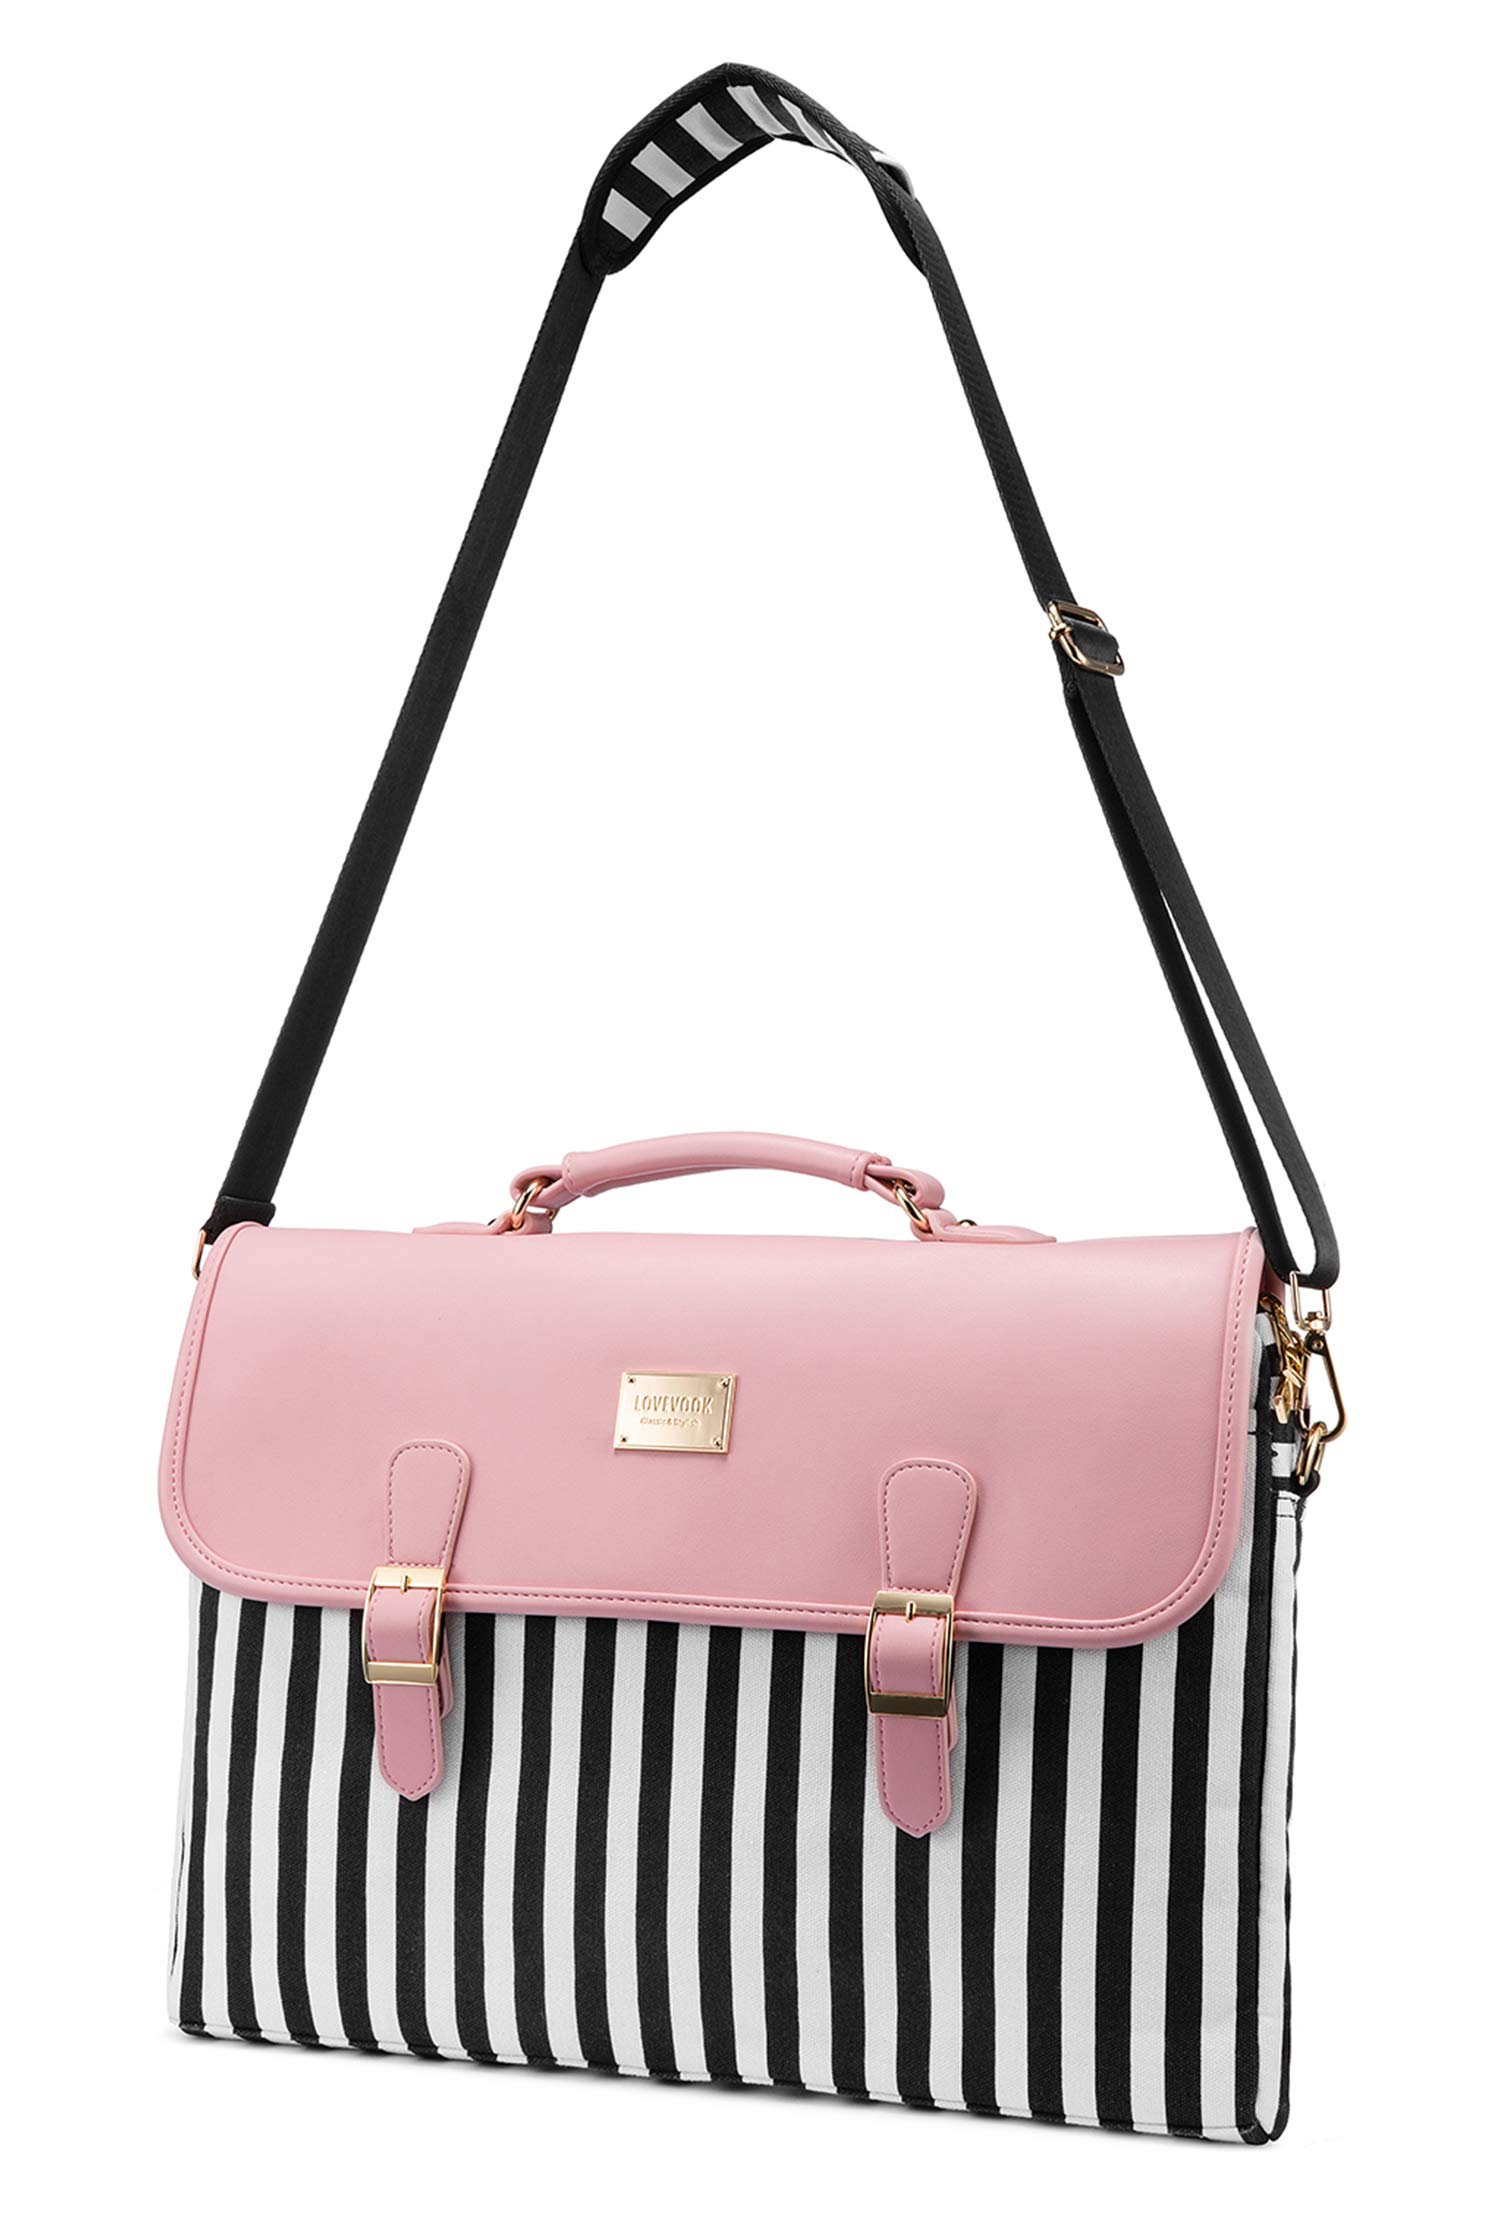 Computer Bag Laptop Bag for Women Cute Laptop Sleeve Case for Work College, Slim-Pink, 15.6-Inch by LOVEVOOK